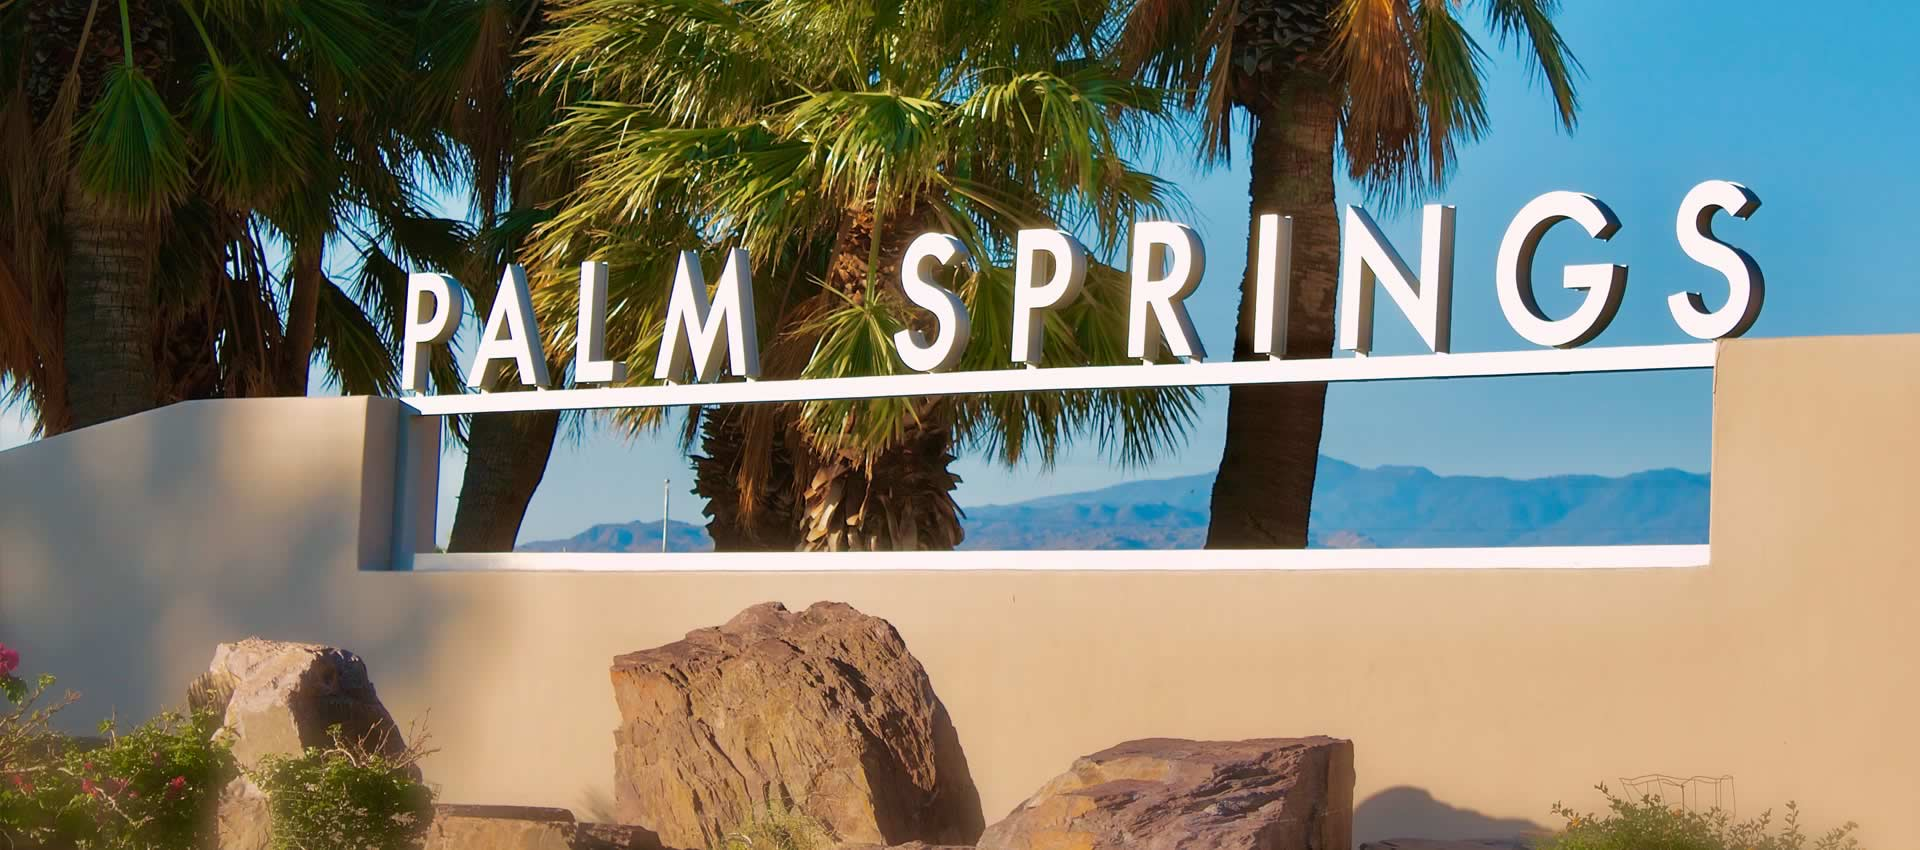 palm-springs-sign